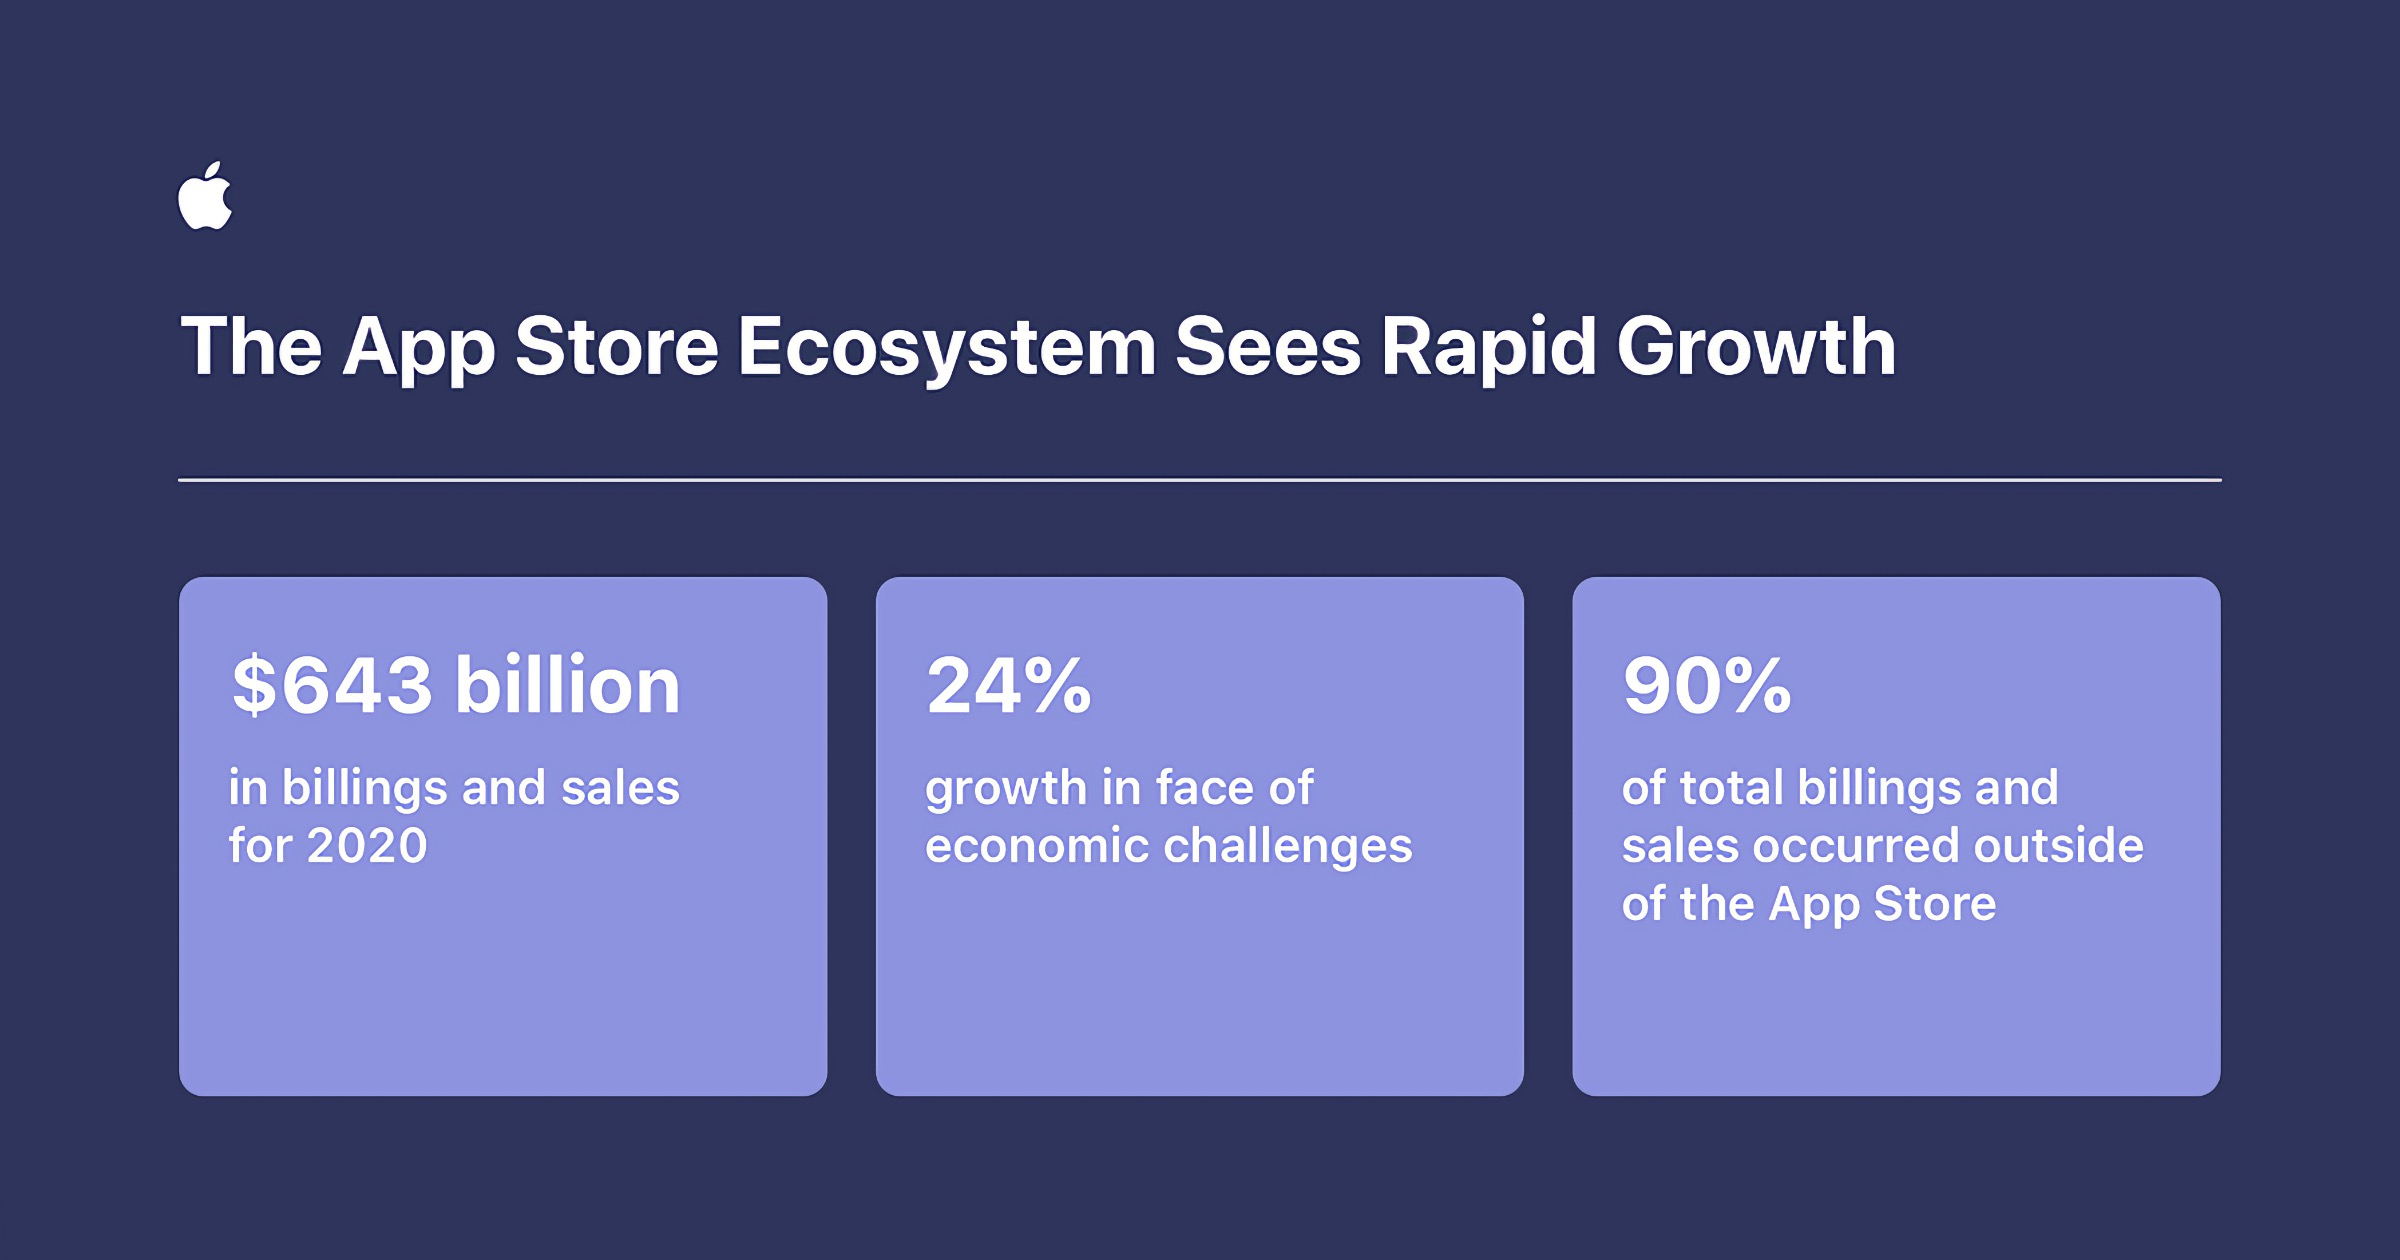 App Store ecosystem growth in 2020